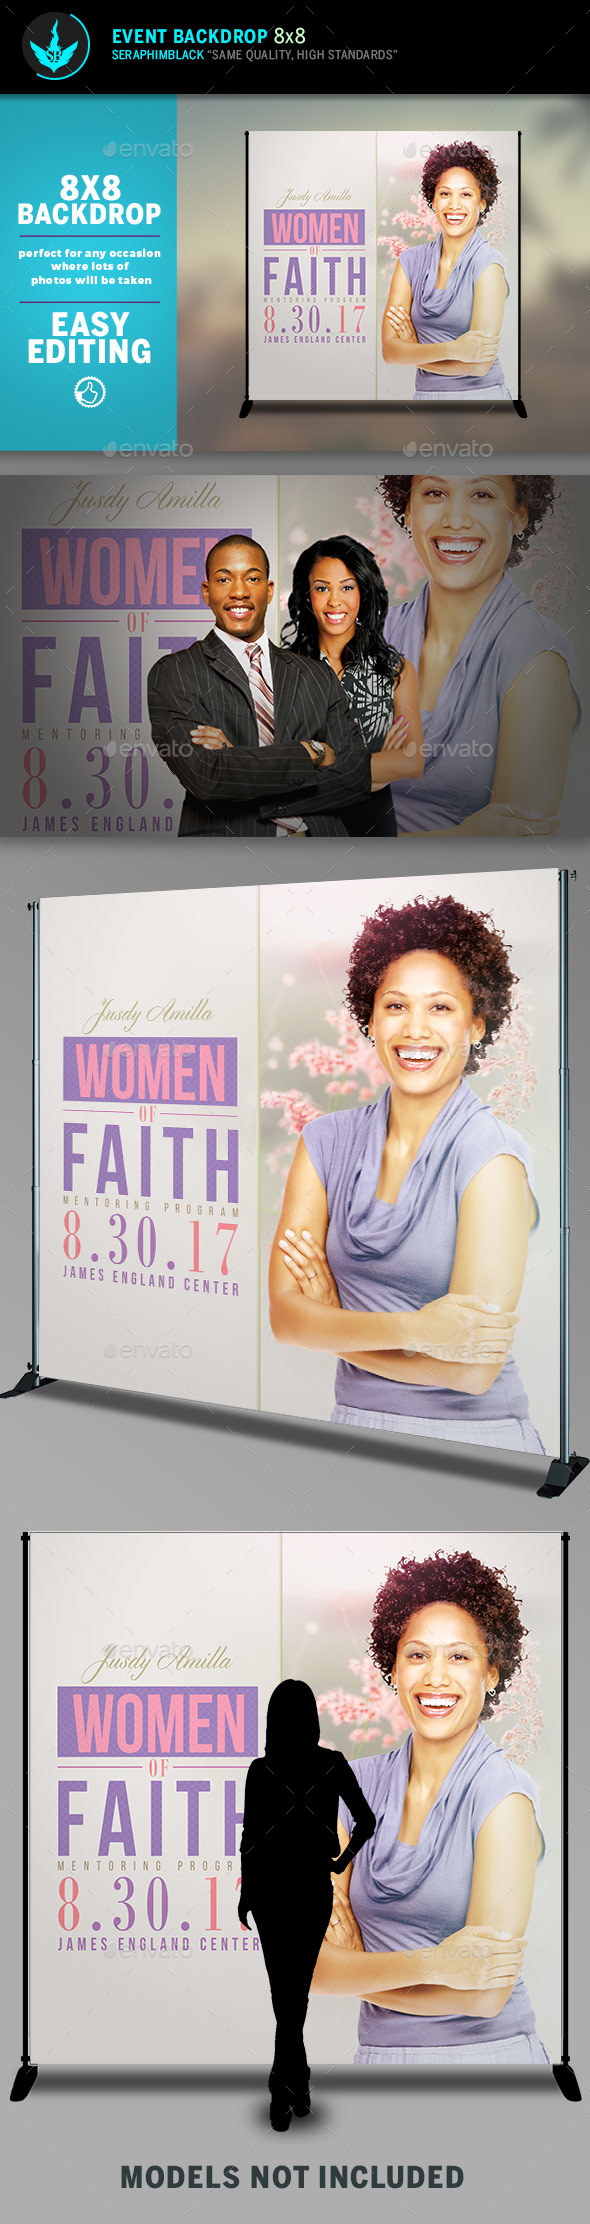 GraphicRiver Women of Faith 8x8 Event Backdrop Template 20490085